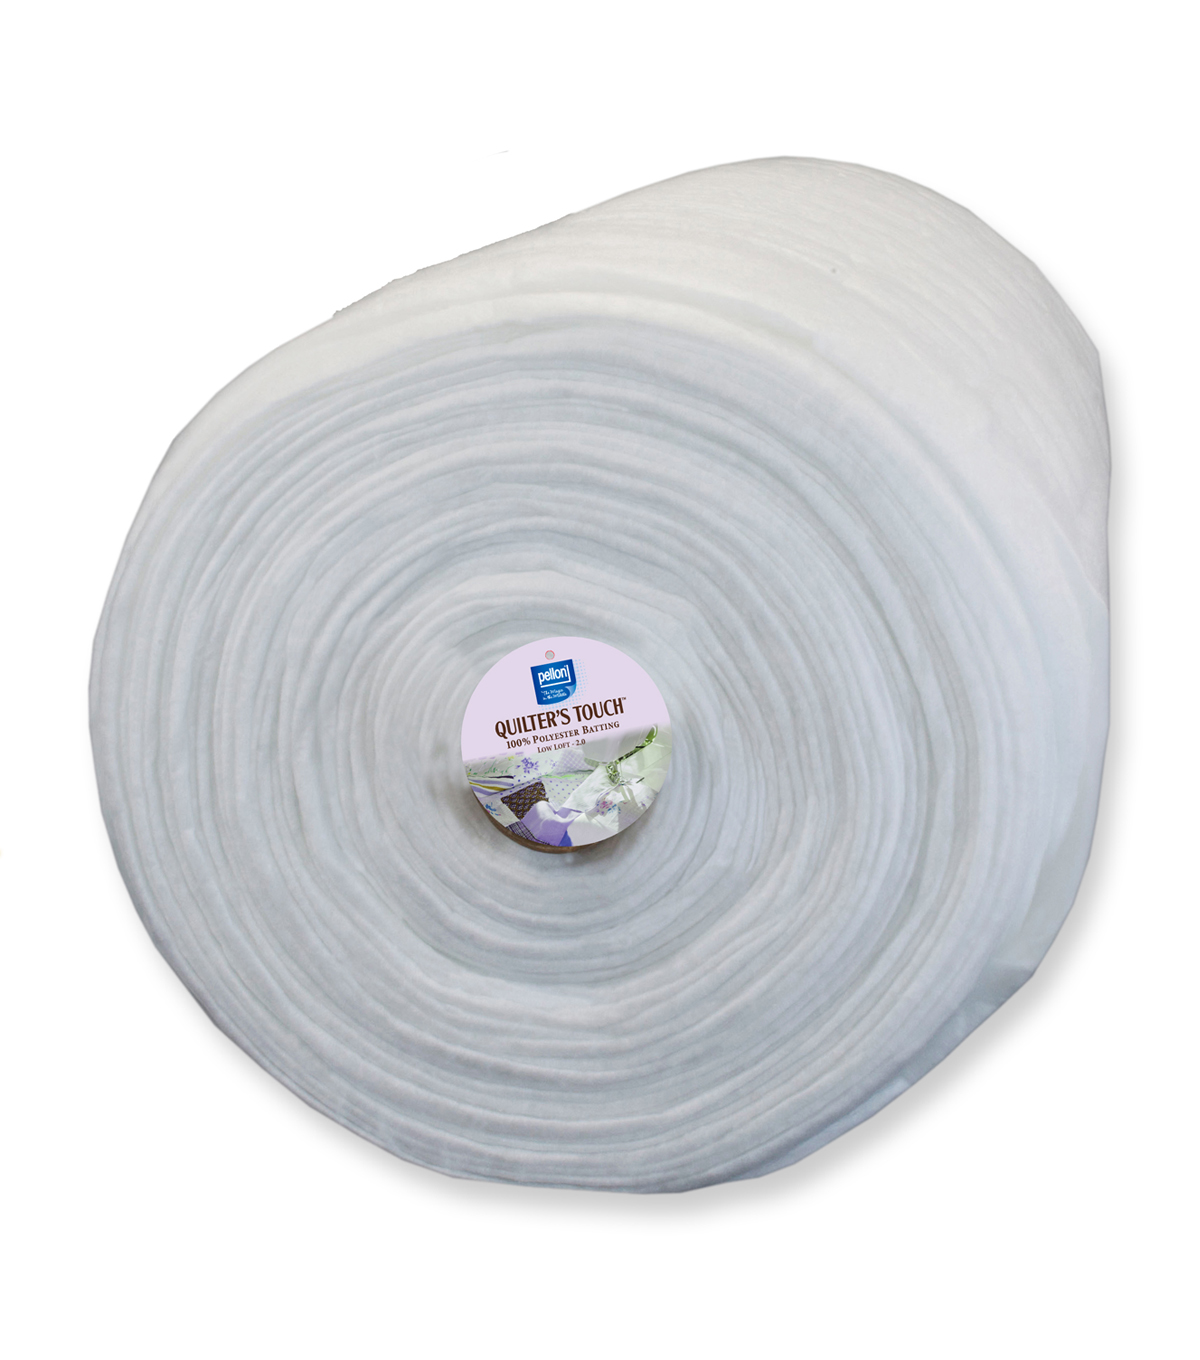 Pellon Quilter's Touch Low-Loft Polyester Batting 96''x30yds